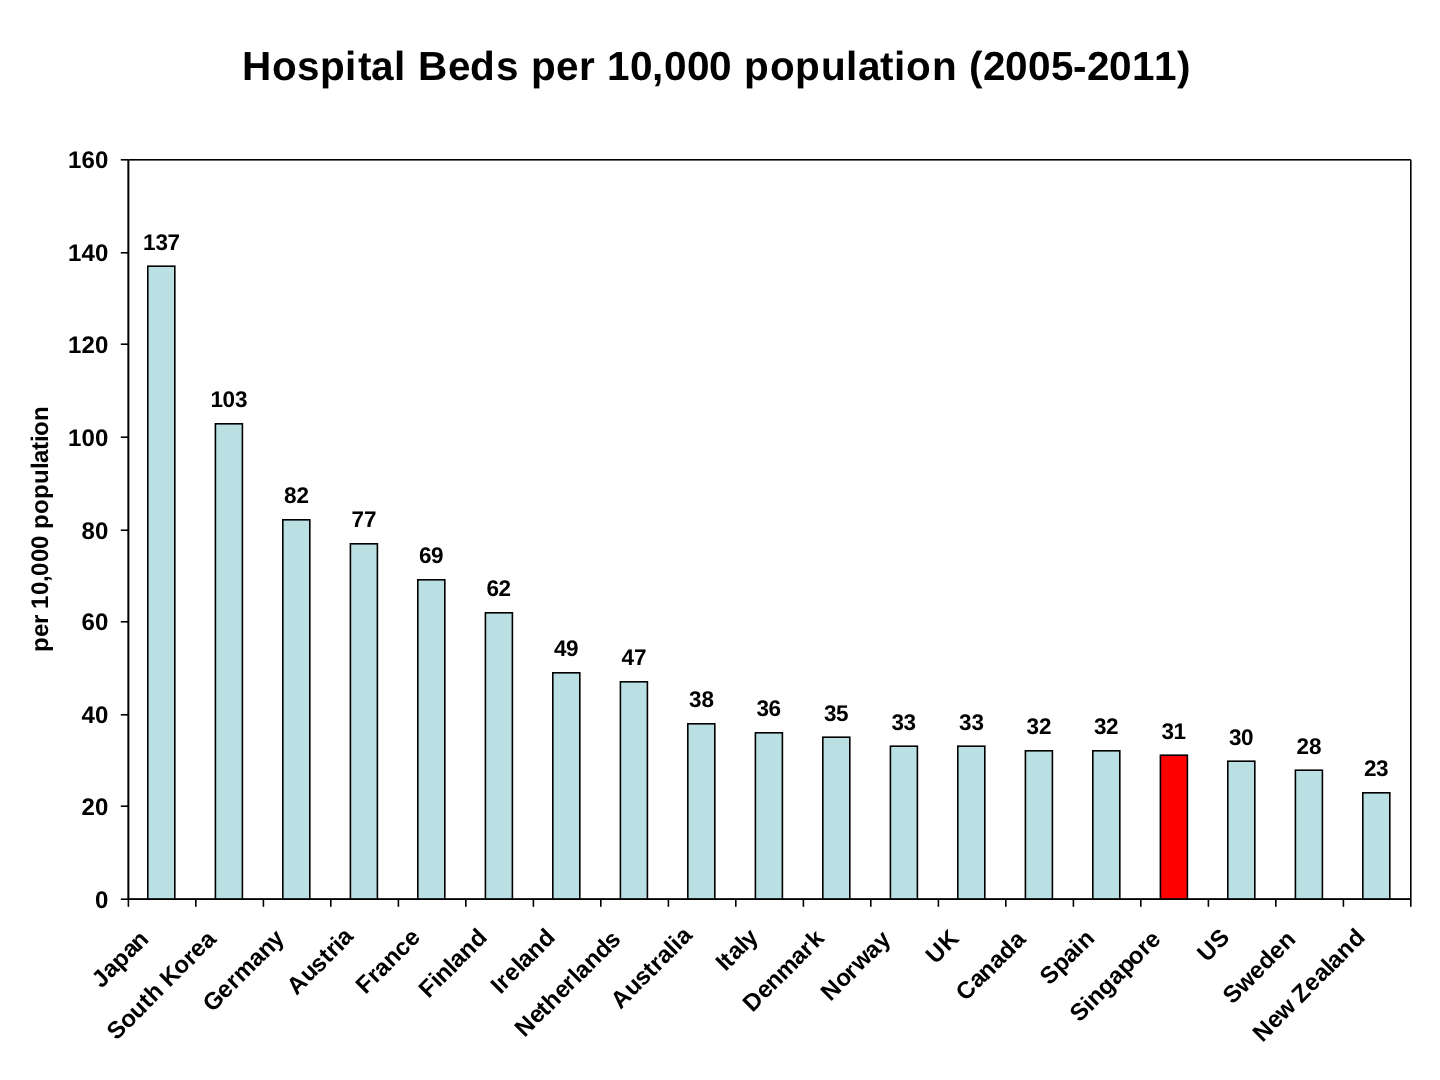 Number of hospital beds in canada - Photo 4 9